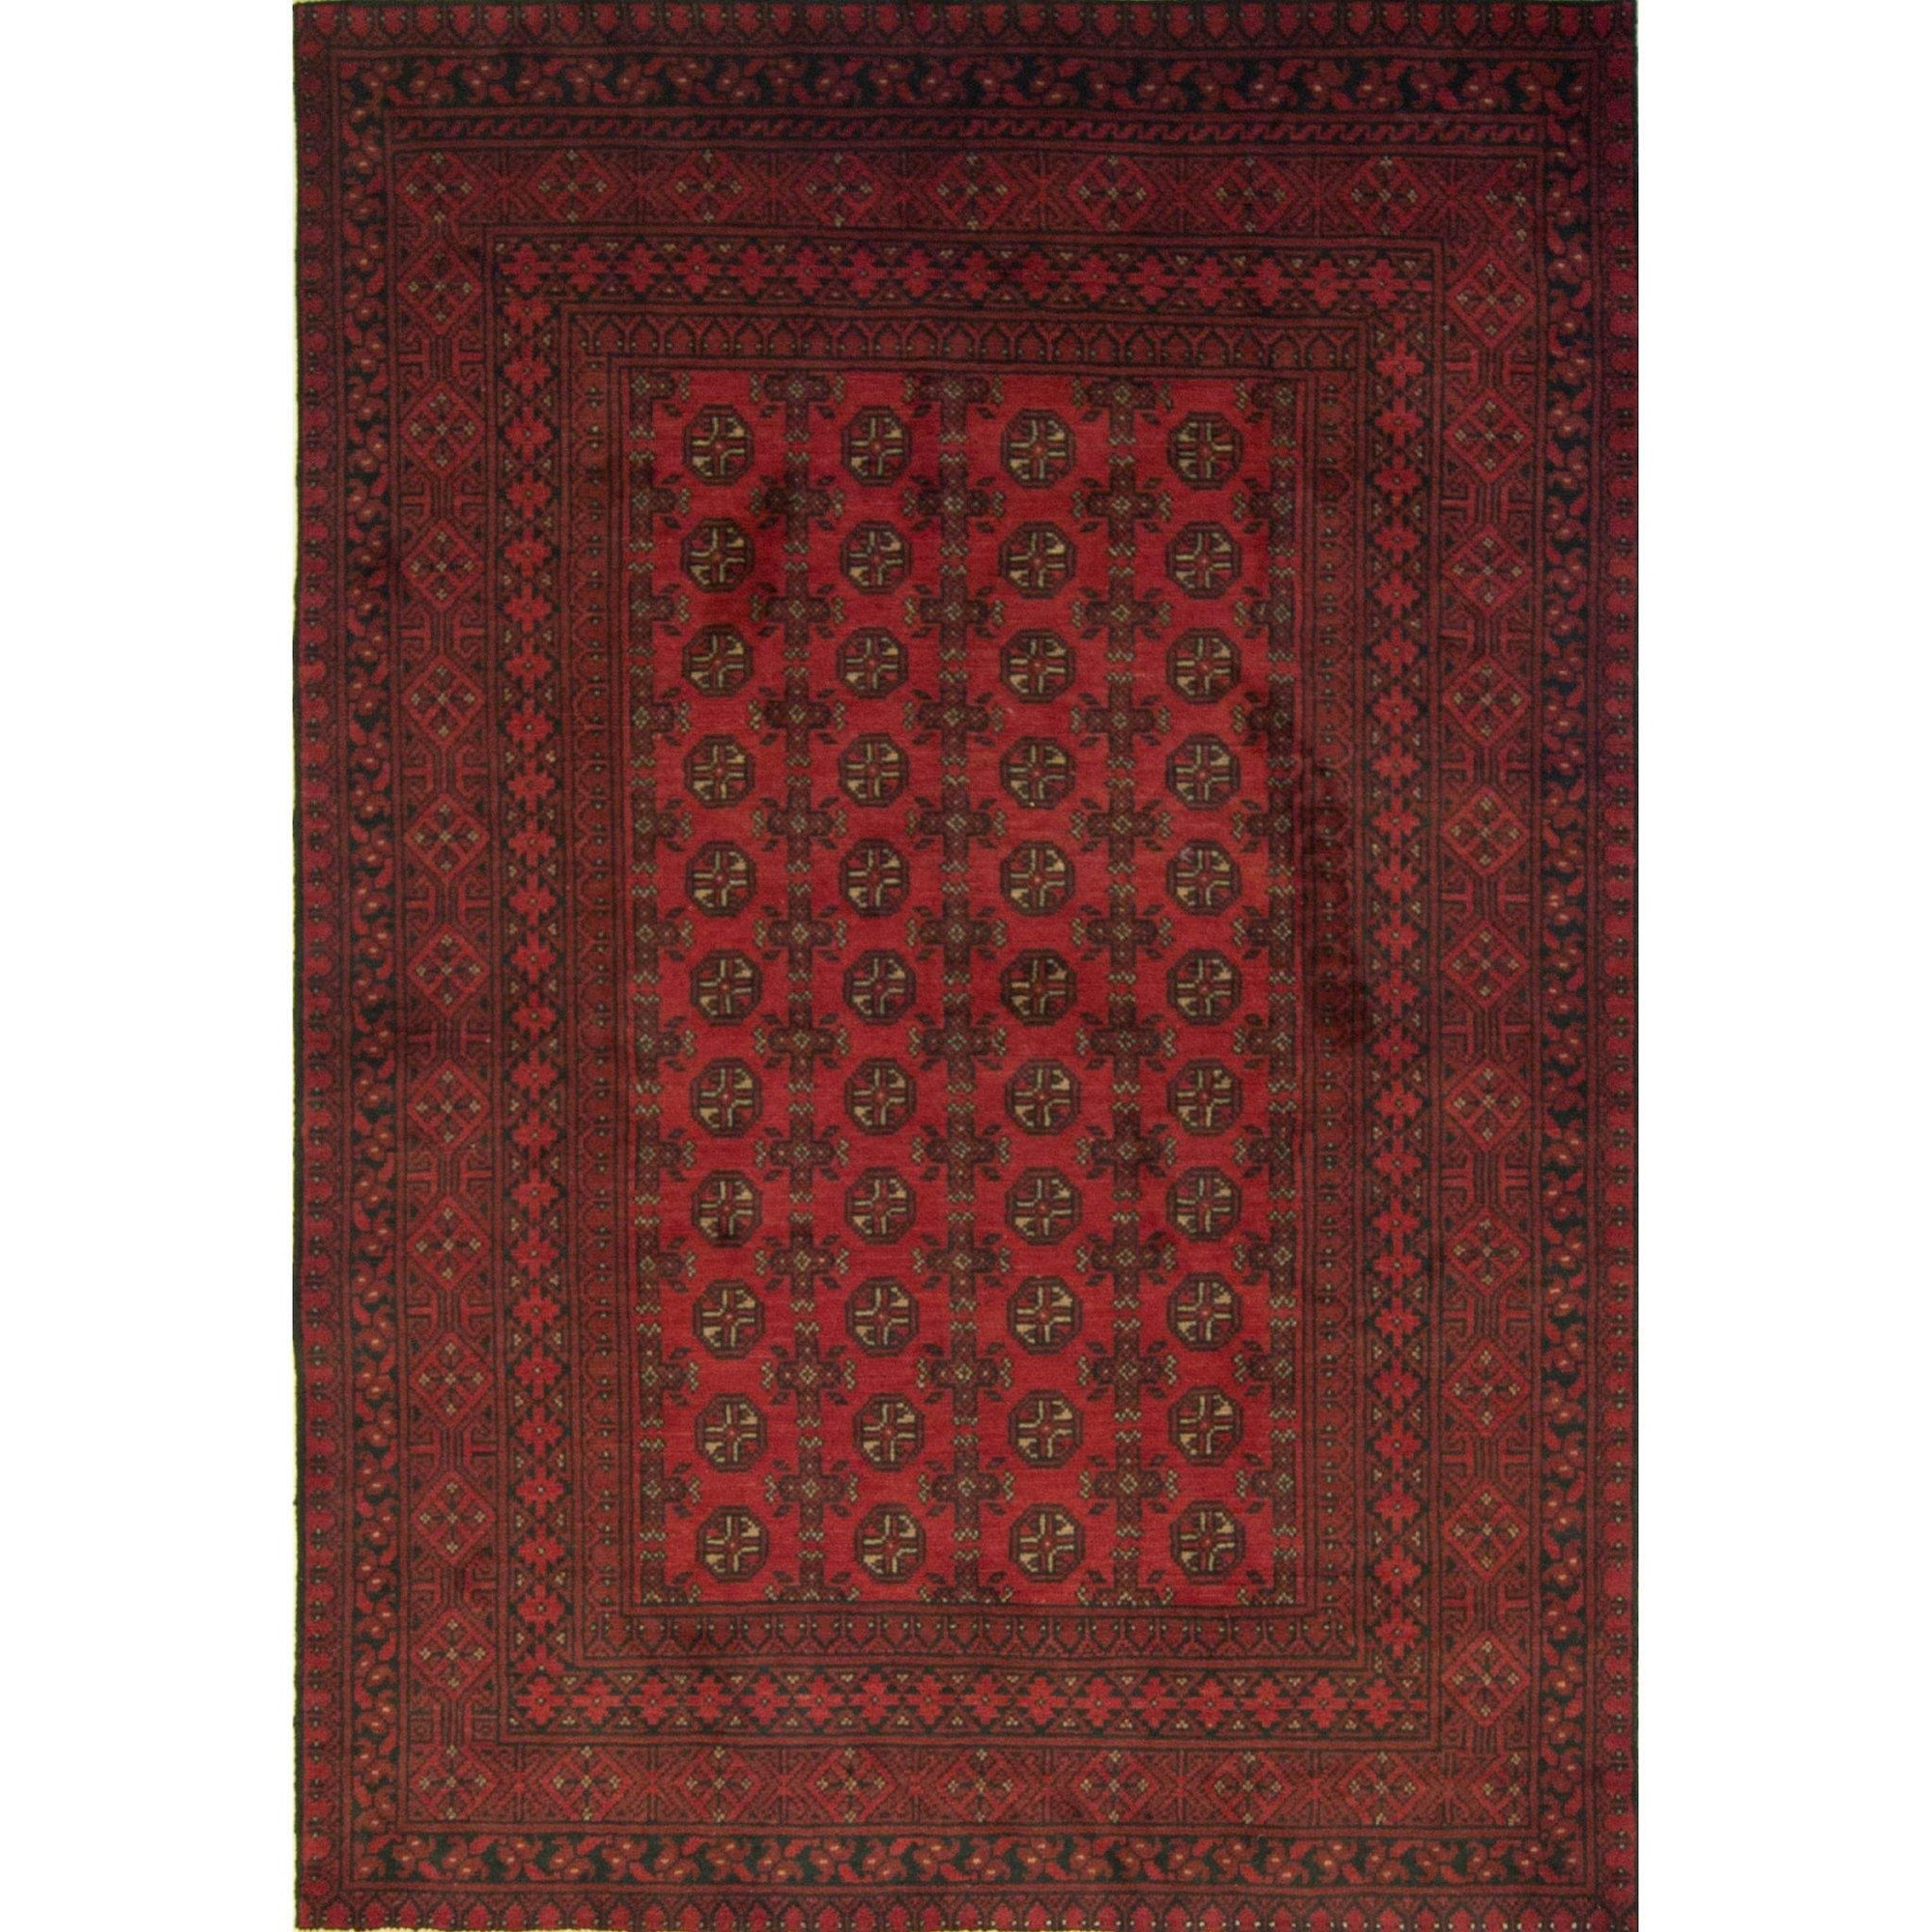 Afghan Tribal Hand-knotted 100% Wool Bokhara Rug 161cm x 234cm Persian-Rug | House-of-Haghi | NewMarket | Auckland | NZ | Handmade Persian Rugs | Hand Knotted Persian Rugs